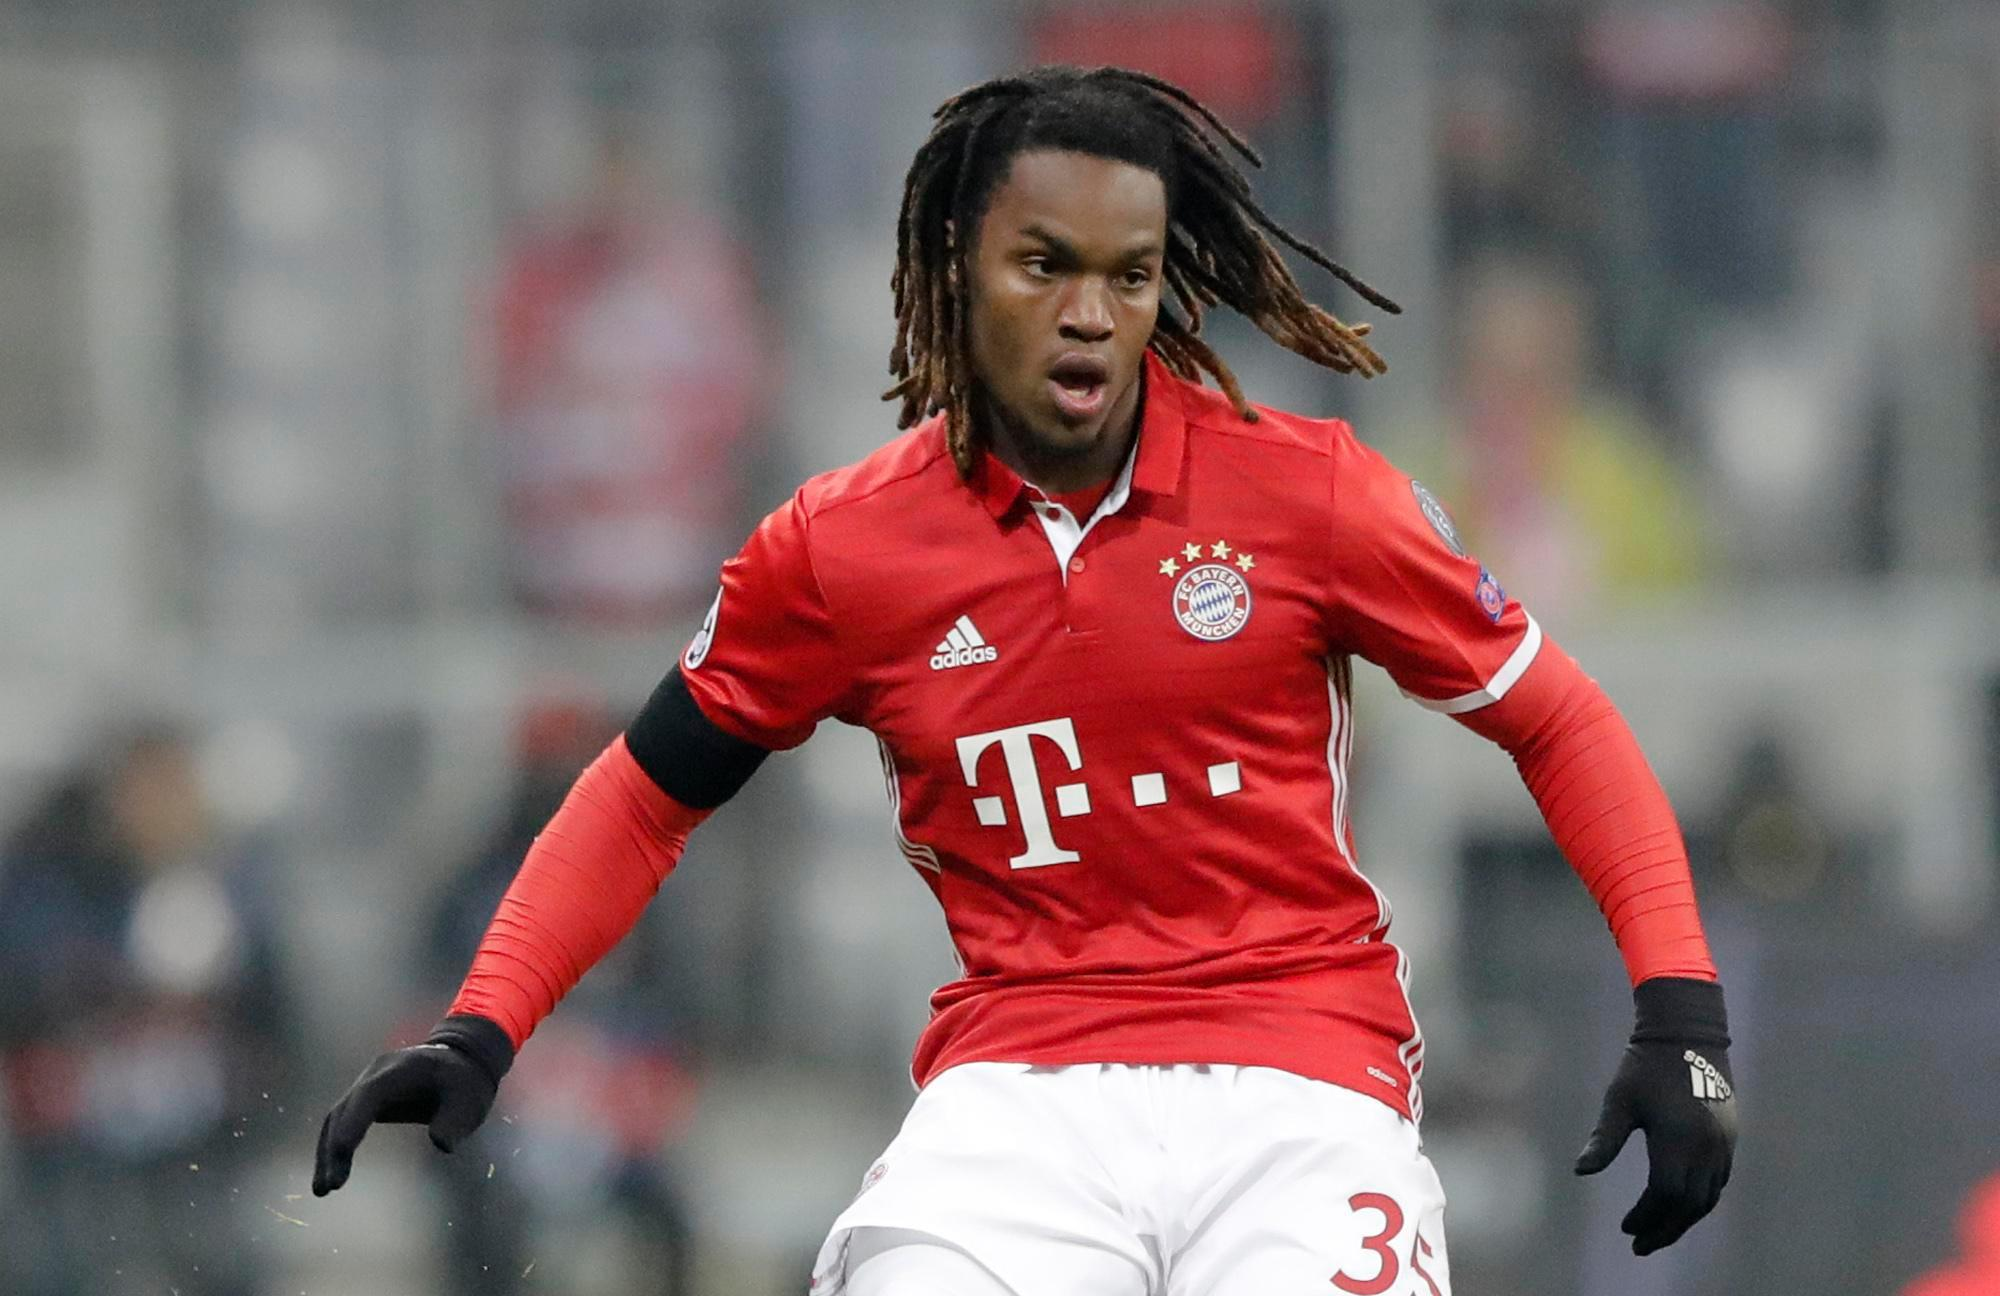 Swansea pulled off a real coup with the loan signing of Renato Sanches from Bayern Munich